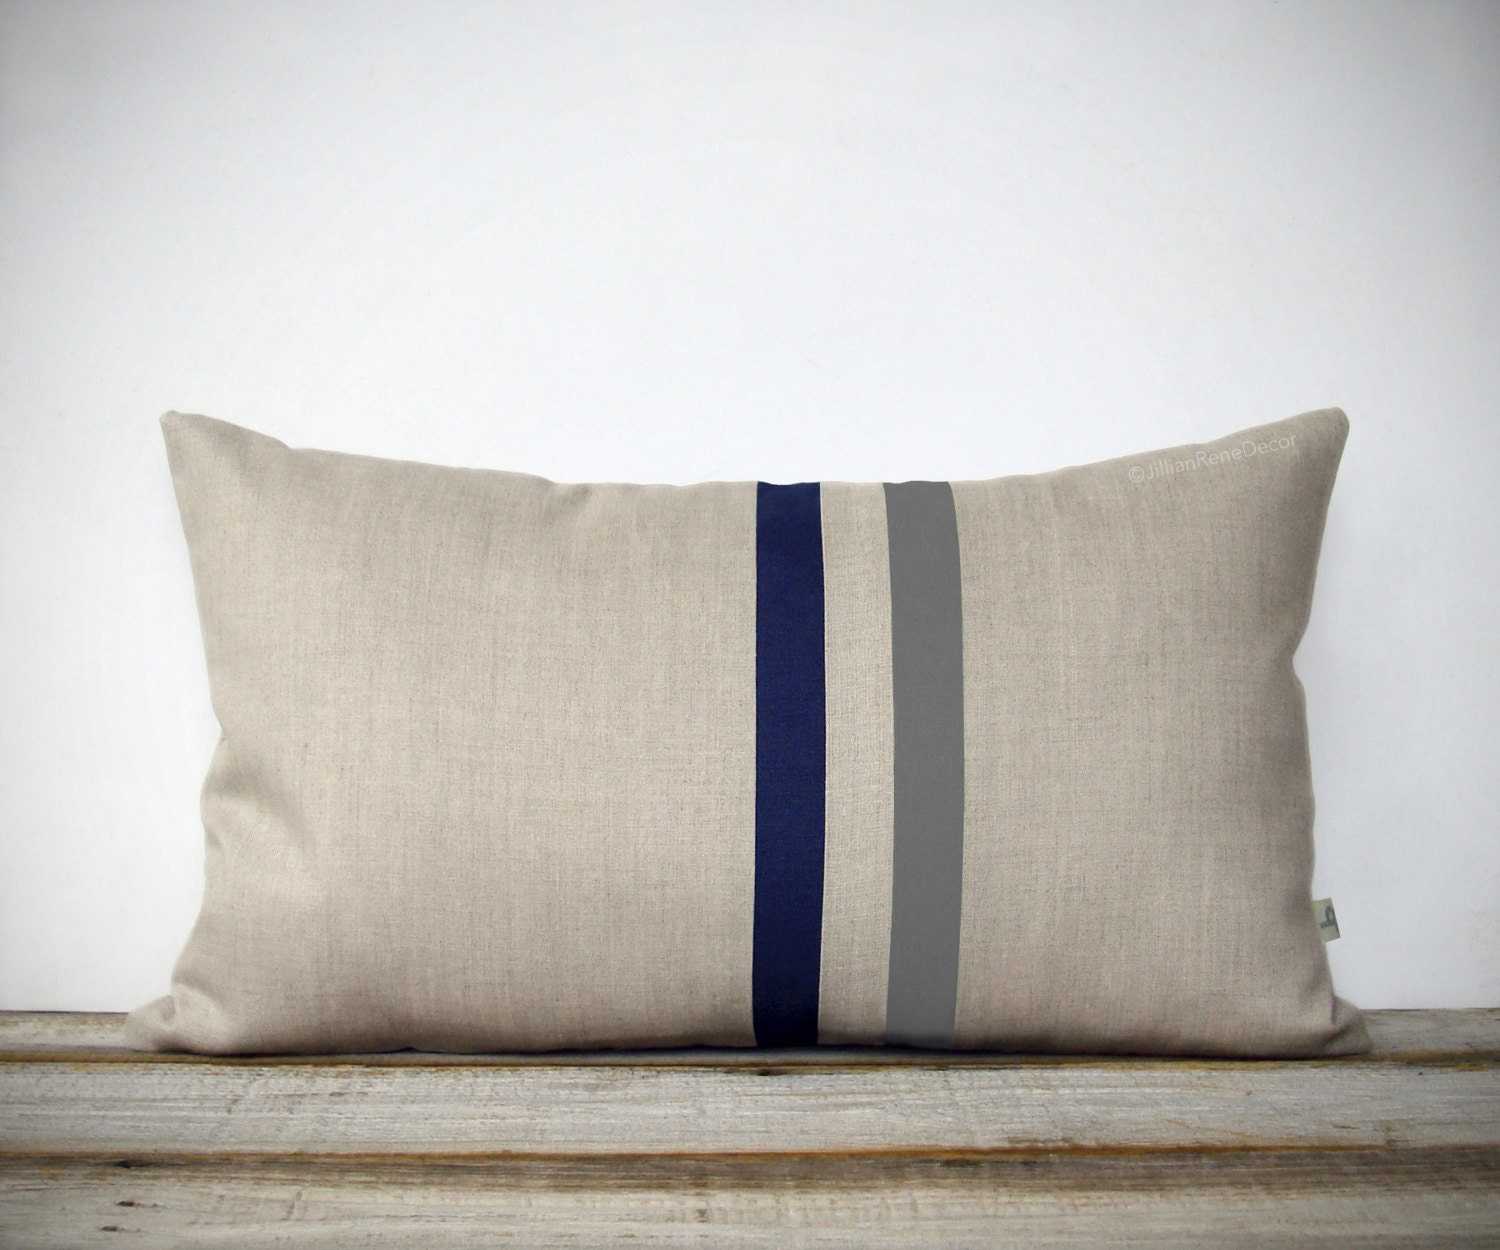 Gray and Navy Striped Pillow 12x20 Modern Home Decor by